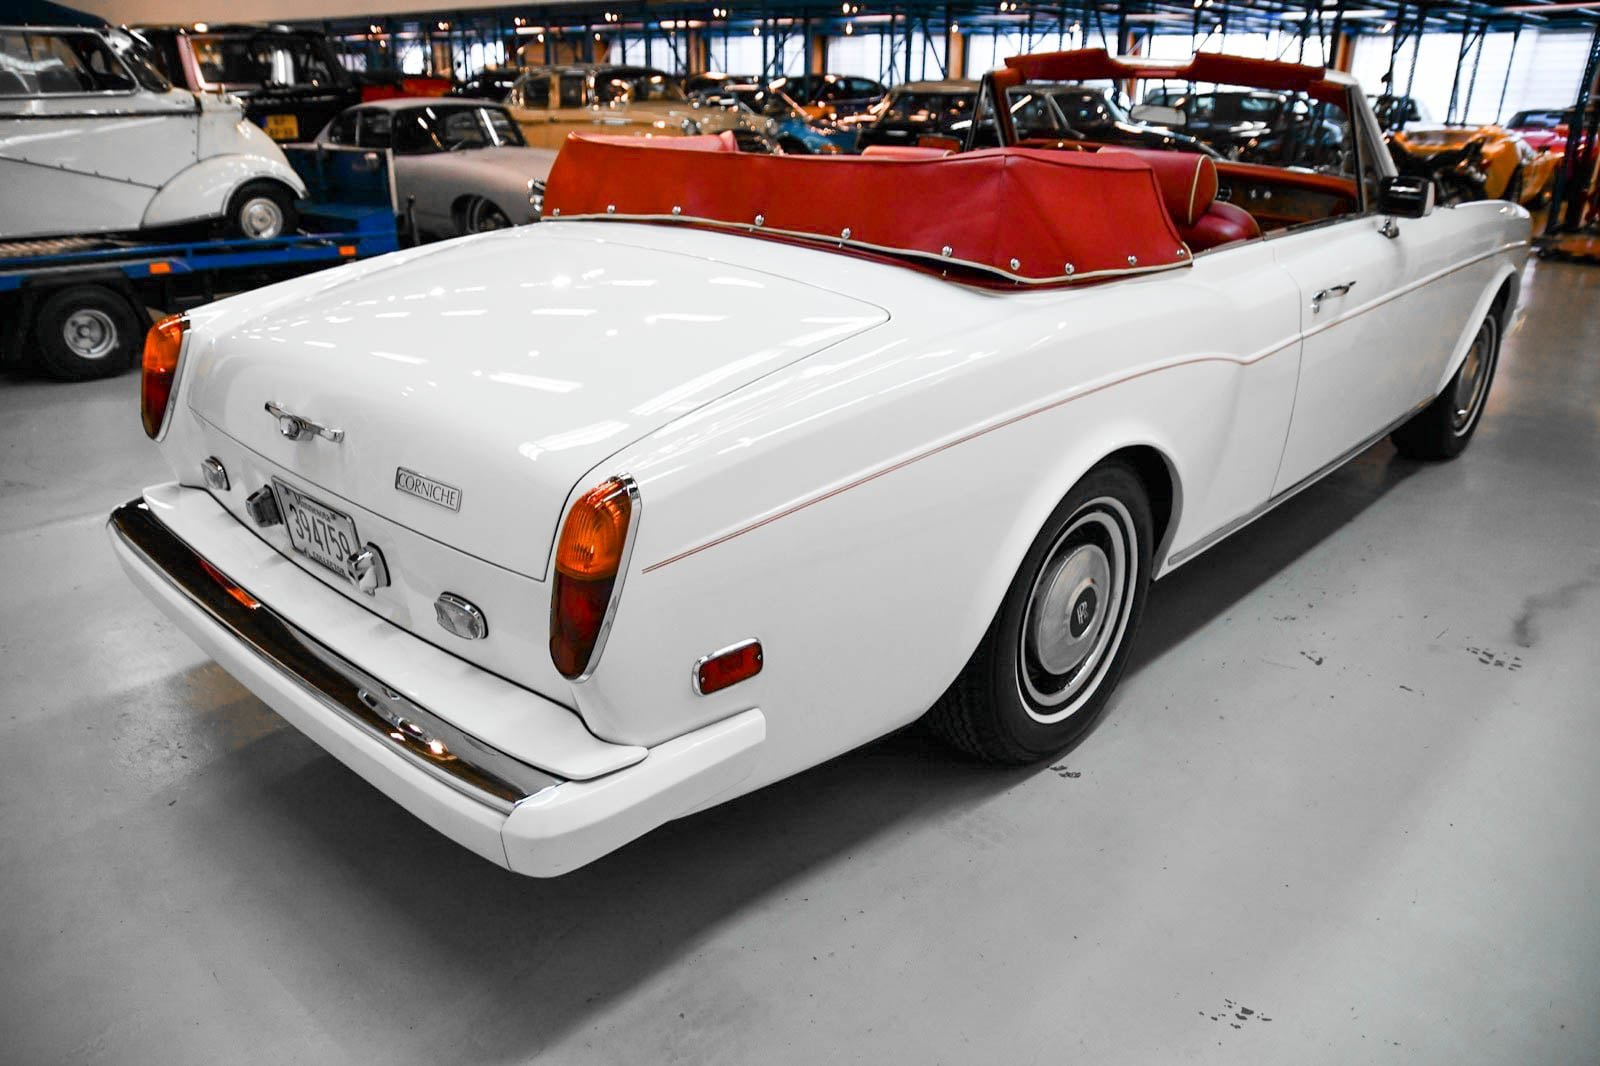 Rolls-Royce Corniche Convertible 1984 For Sale by Auction (picture 3 of 6)